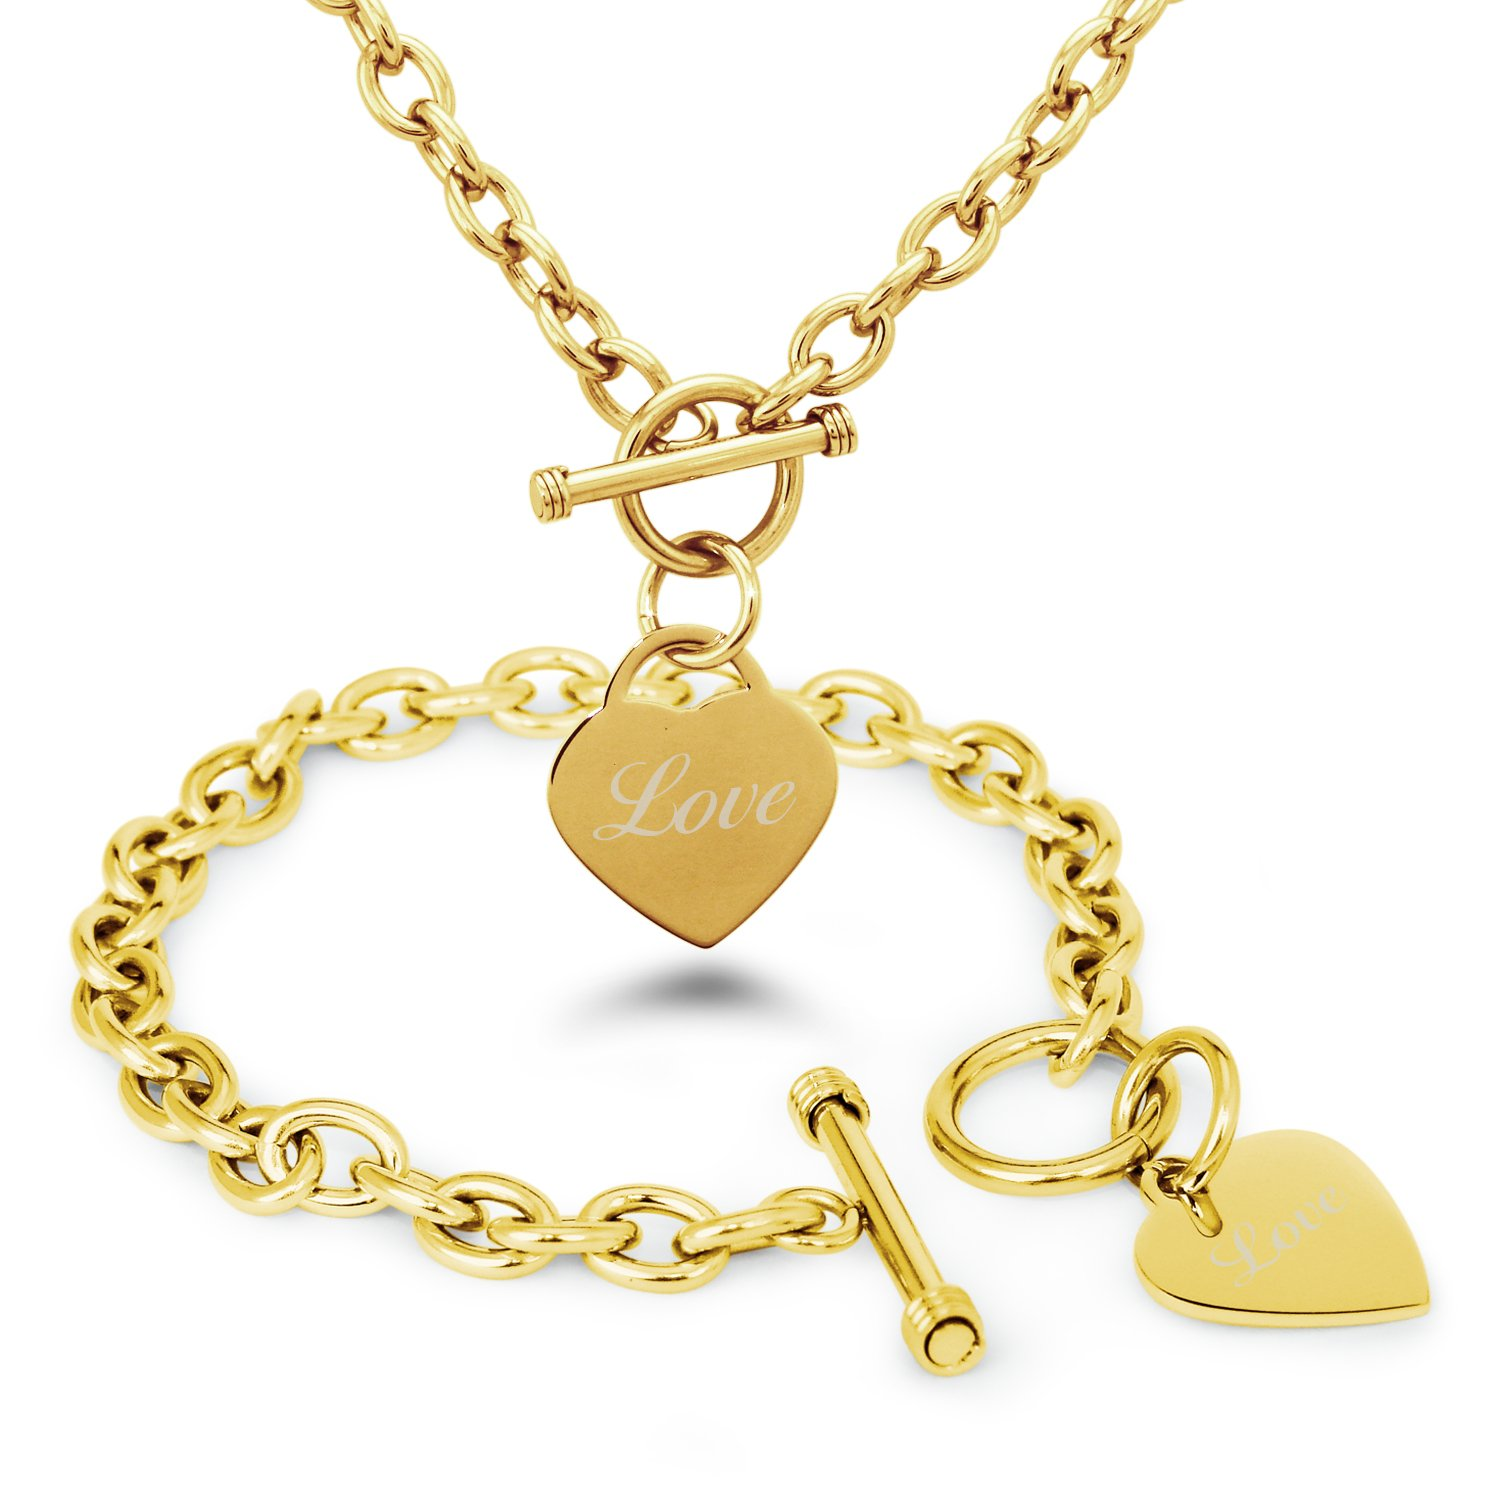 Gold Plated Stainless Steel Engraved Love Heart Tag Charm Set